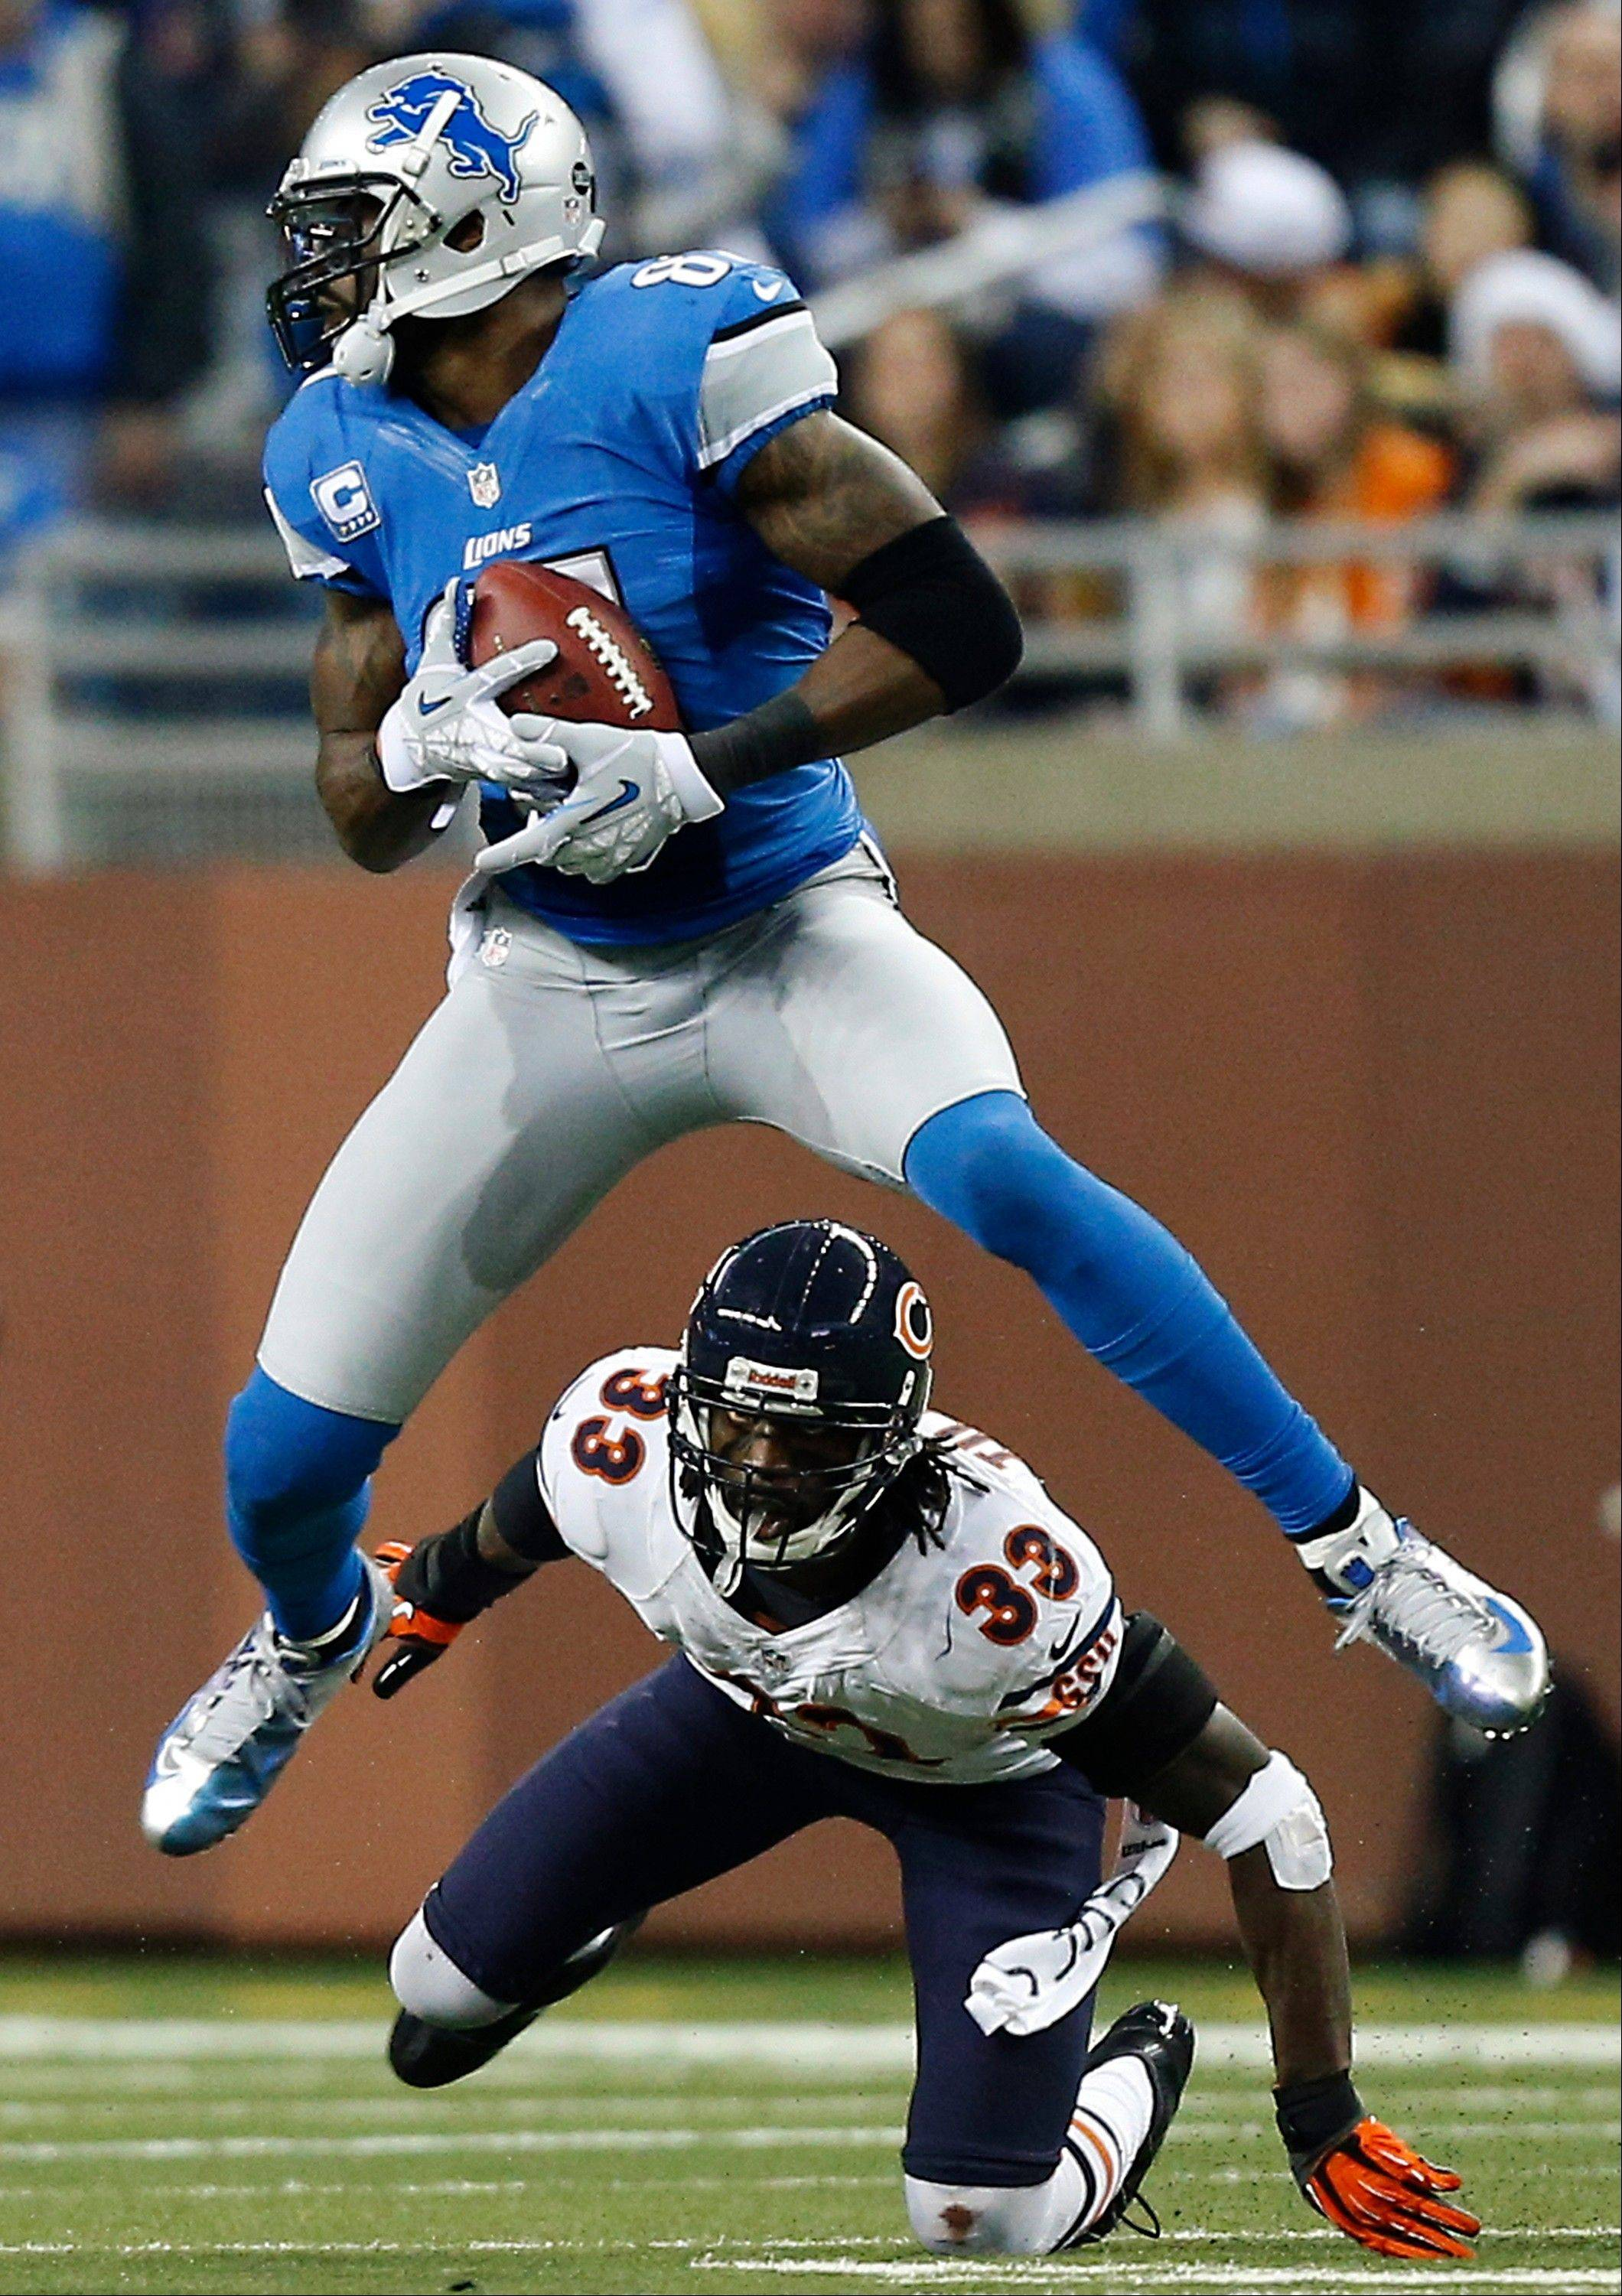 Detroit Lions wide receiver Calvin Johnson (81) gains 18-yards on a pass reception under pressure from Chicago Bears cornerback Charles Tillman (33) during the third quarter.